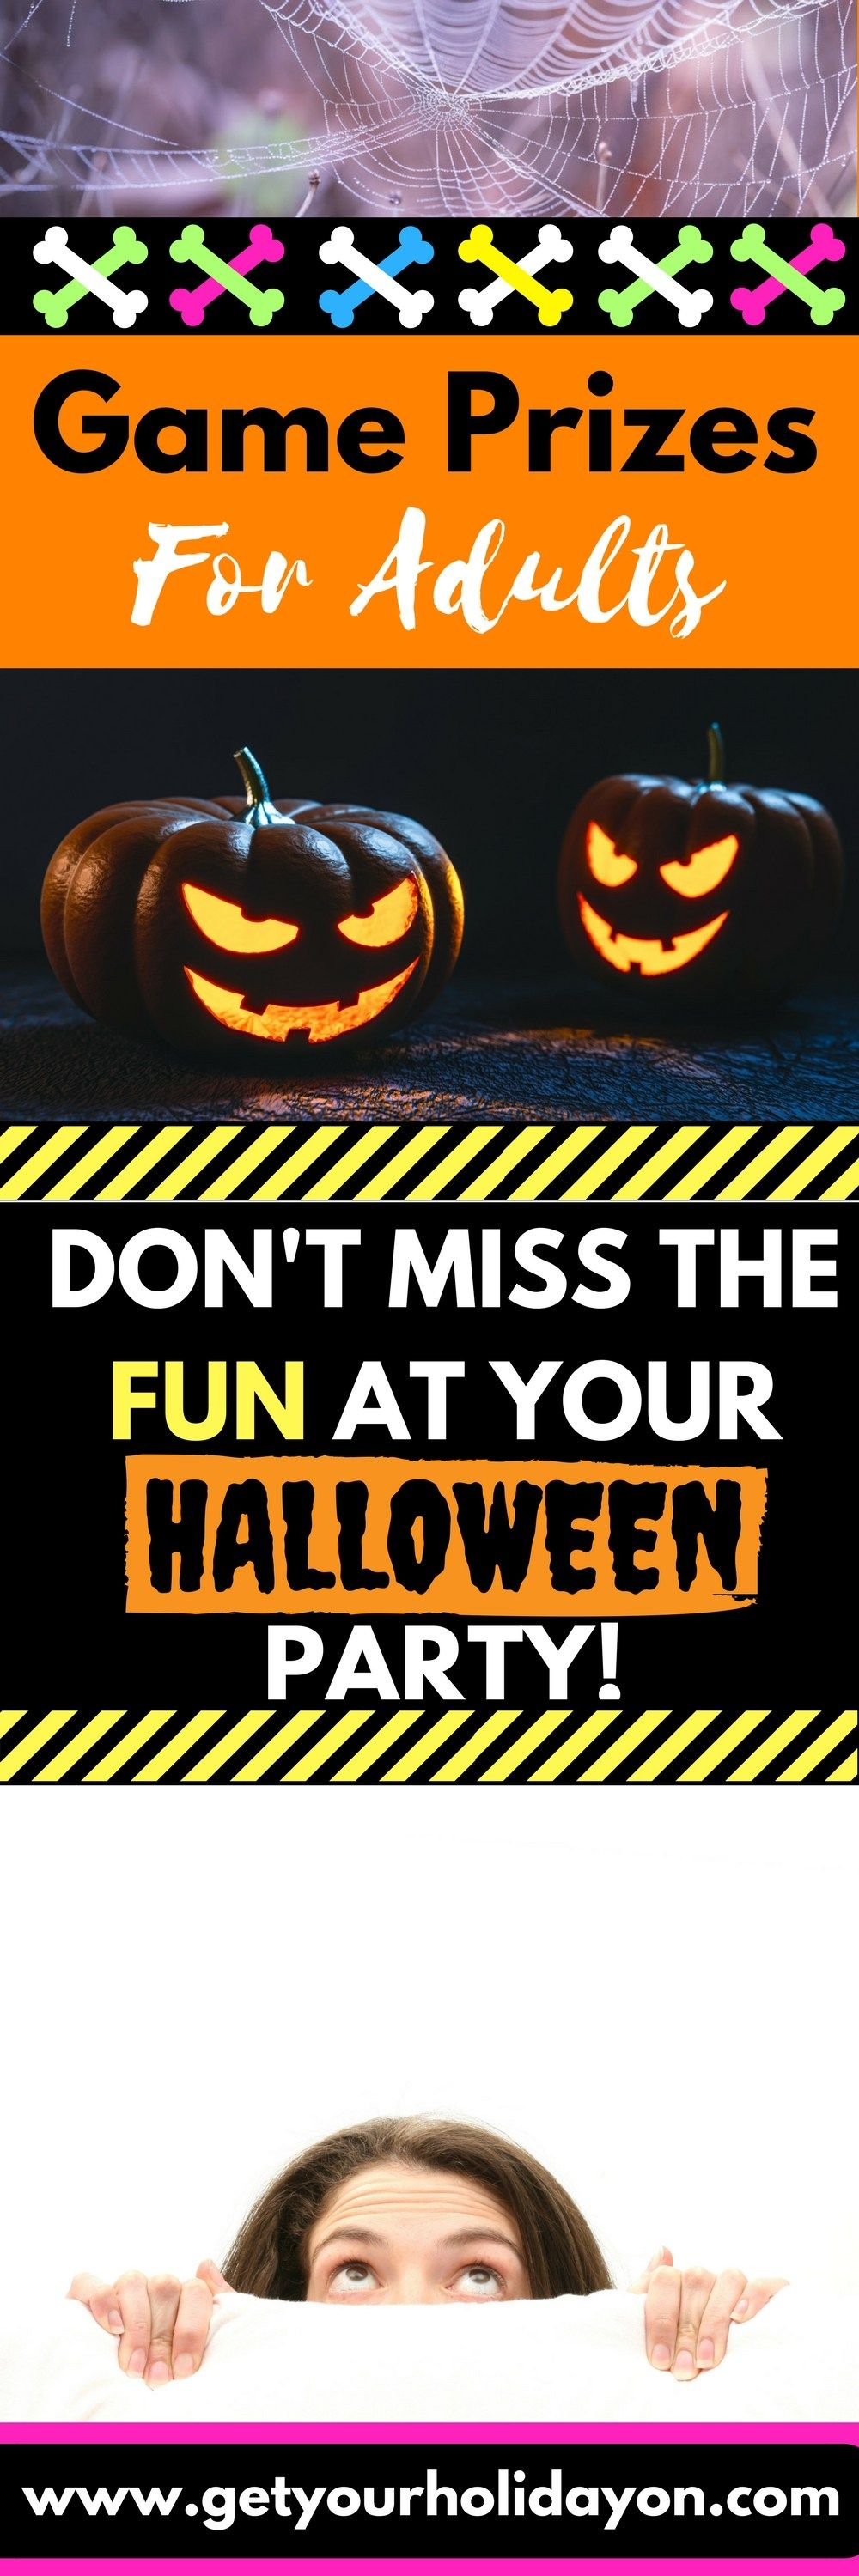 Adult Halloween Party Game Prizes | Pumpkin carving contest, Game ...